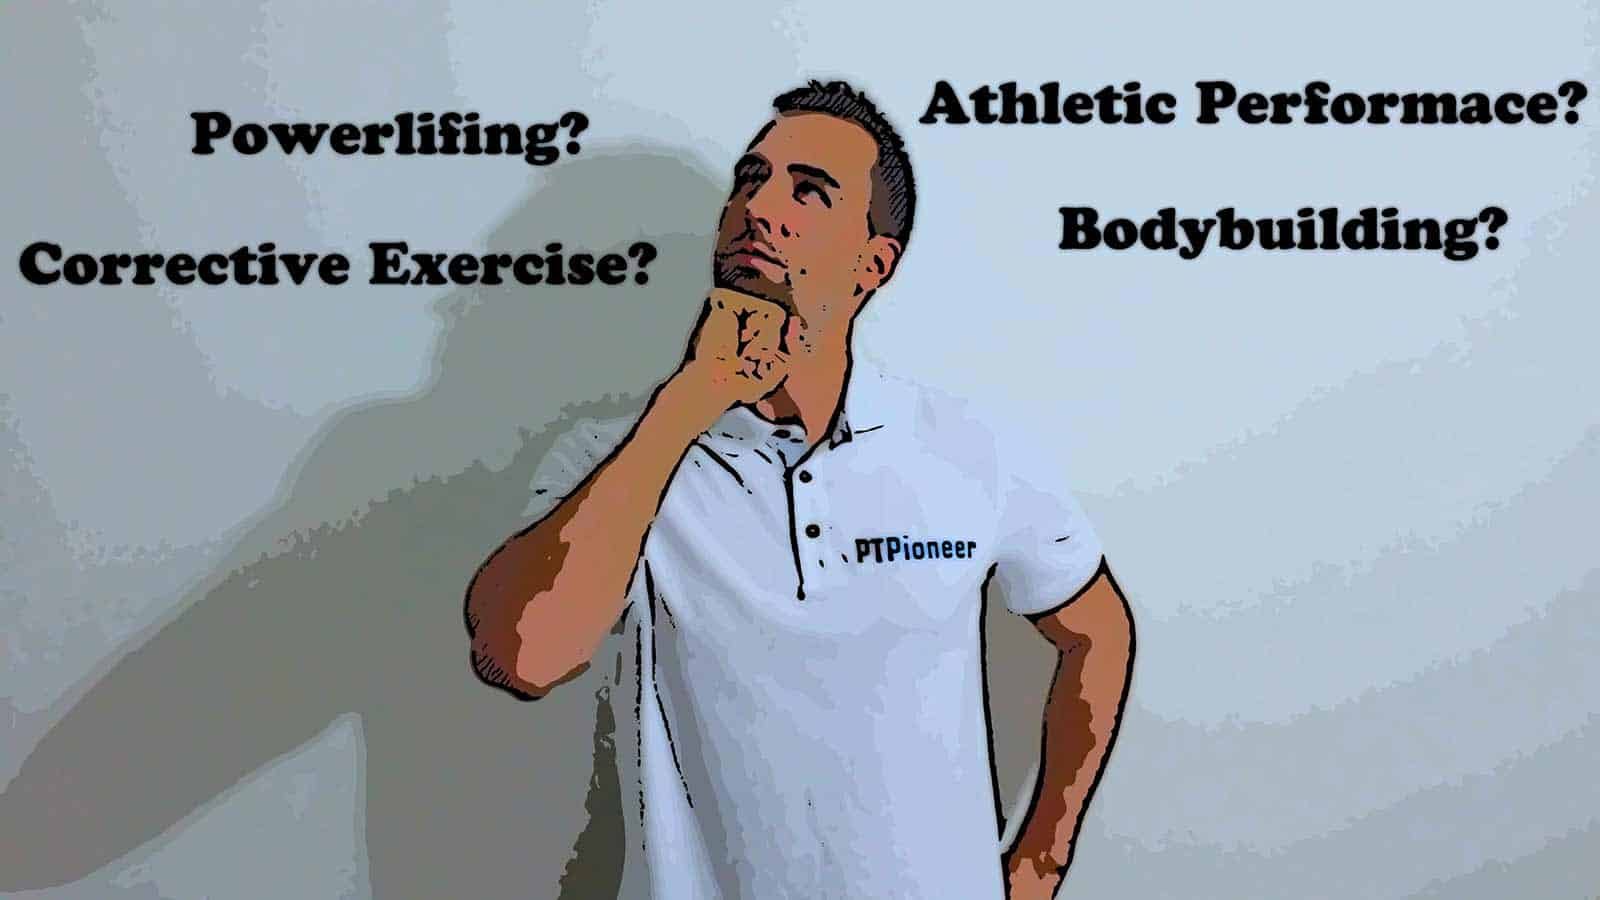 Guide to the best personal trainer certification ptpioneer what type of personal training do you want to do xflitez Images